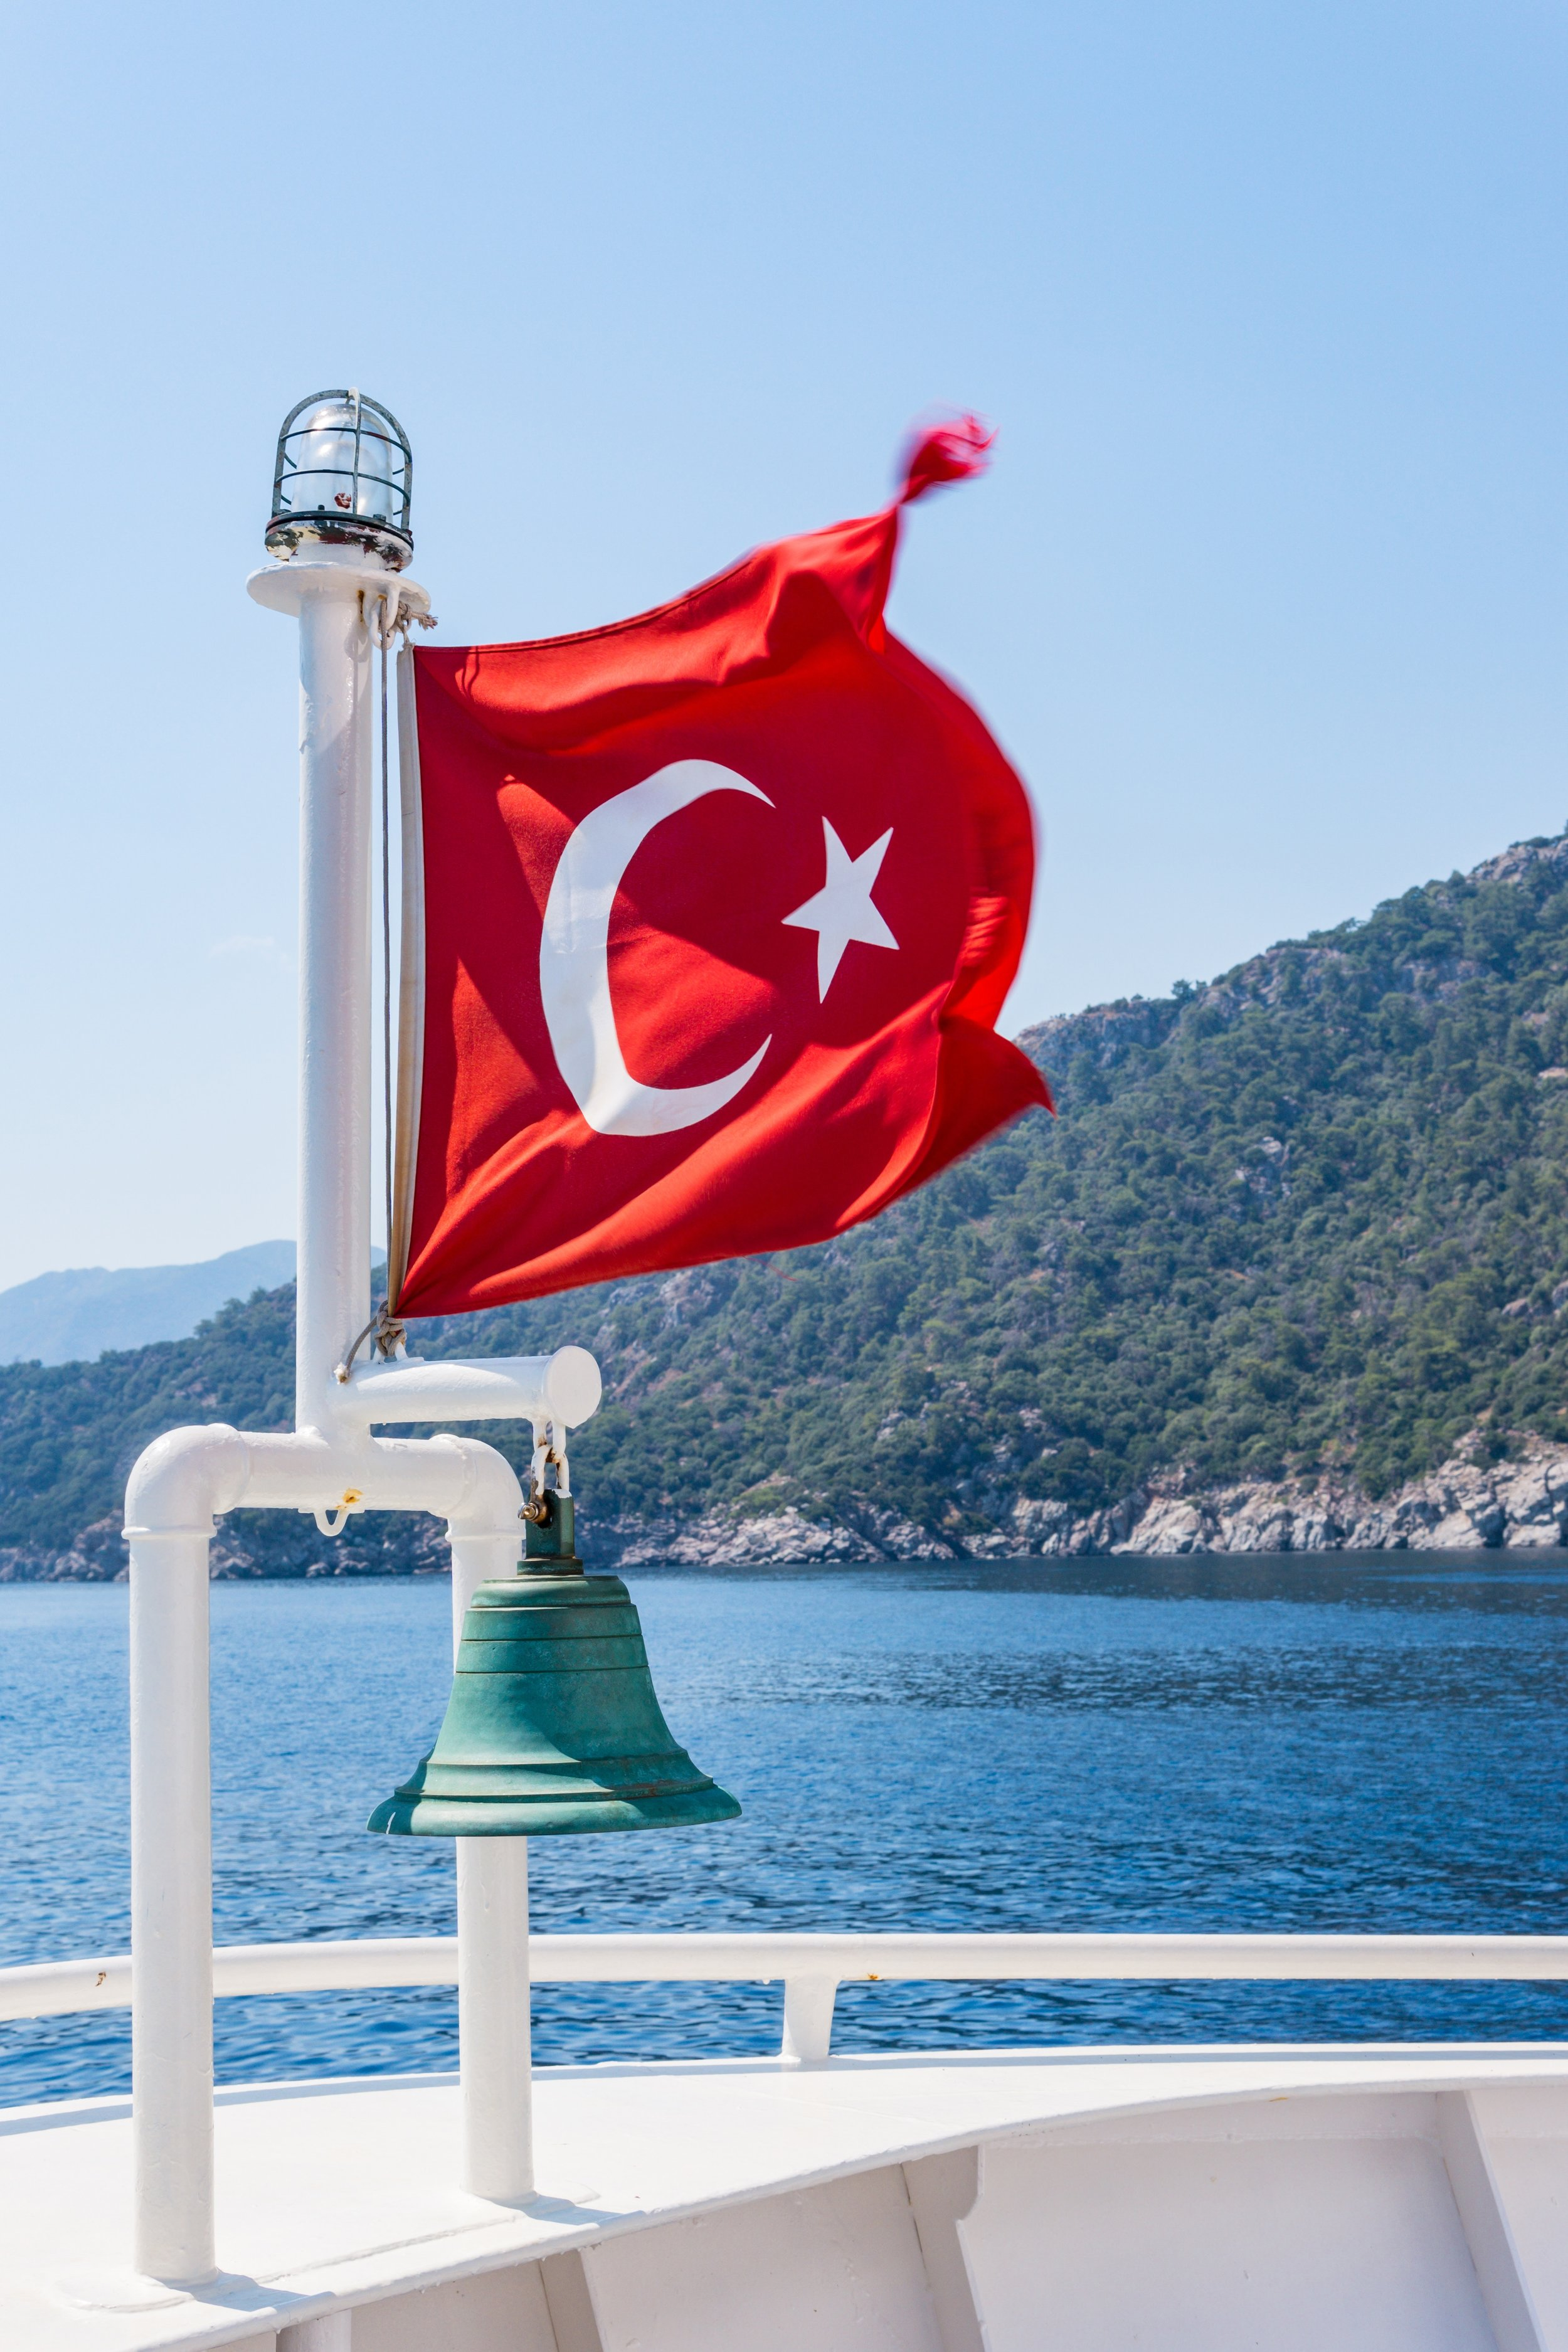 Turkish national flag waving in the wind by Istanbul, Turkey on the Bosphorus.